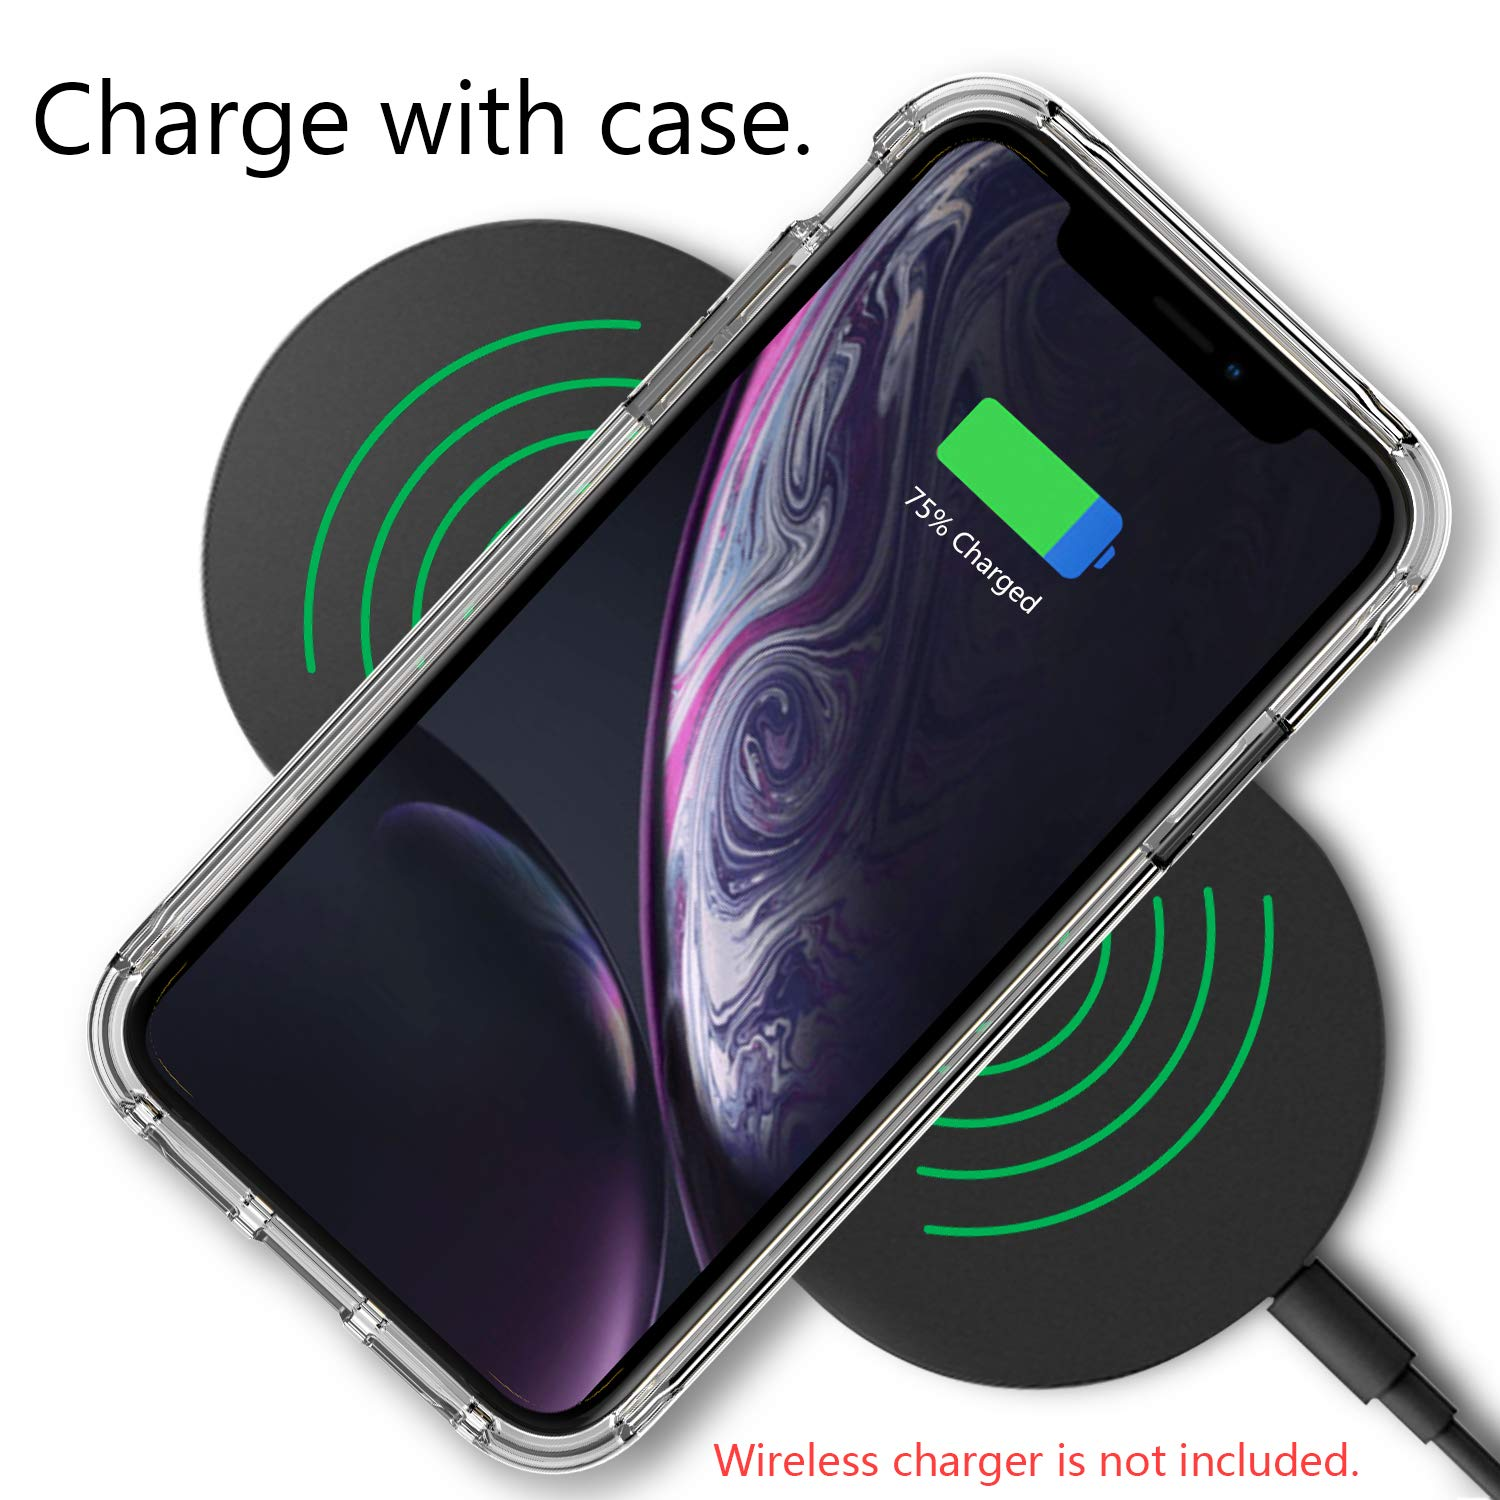 EFFENX iPhone XR Case - Clear Cover iPhone XR Shockproof Bumper with Air Cushion Protective case Soft and Slim (Clear Color) by EFFENX (Image #6)